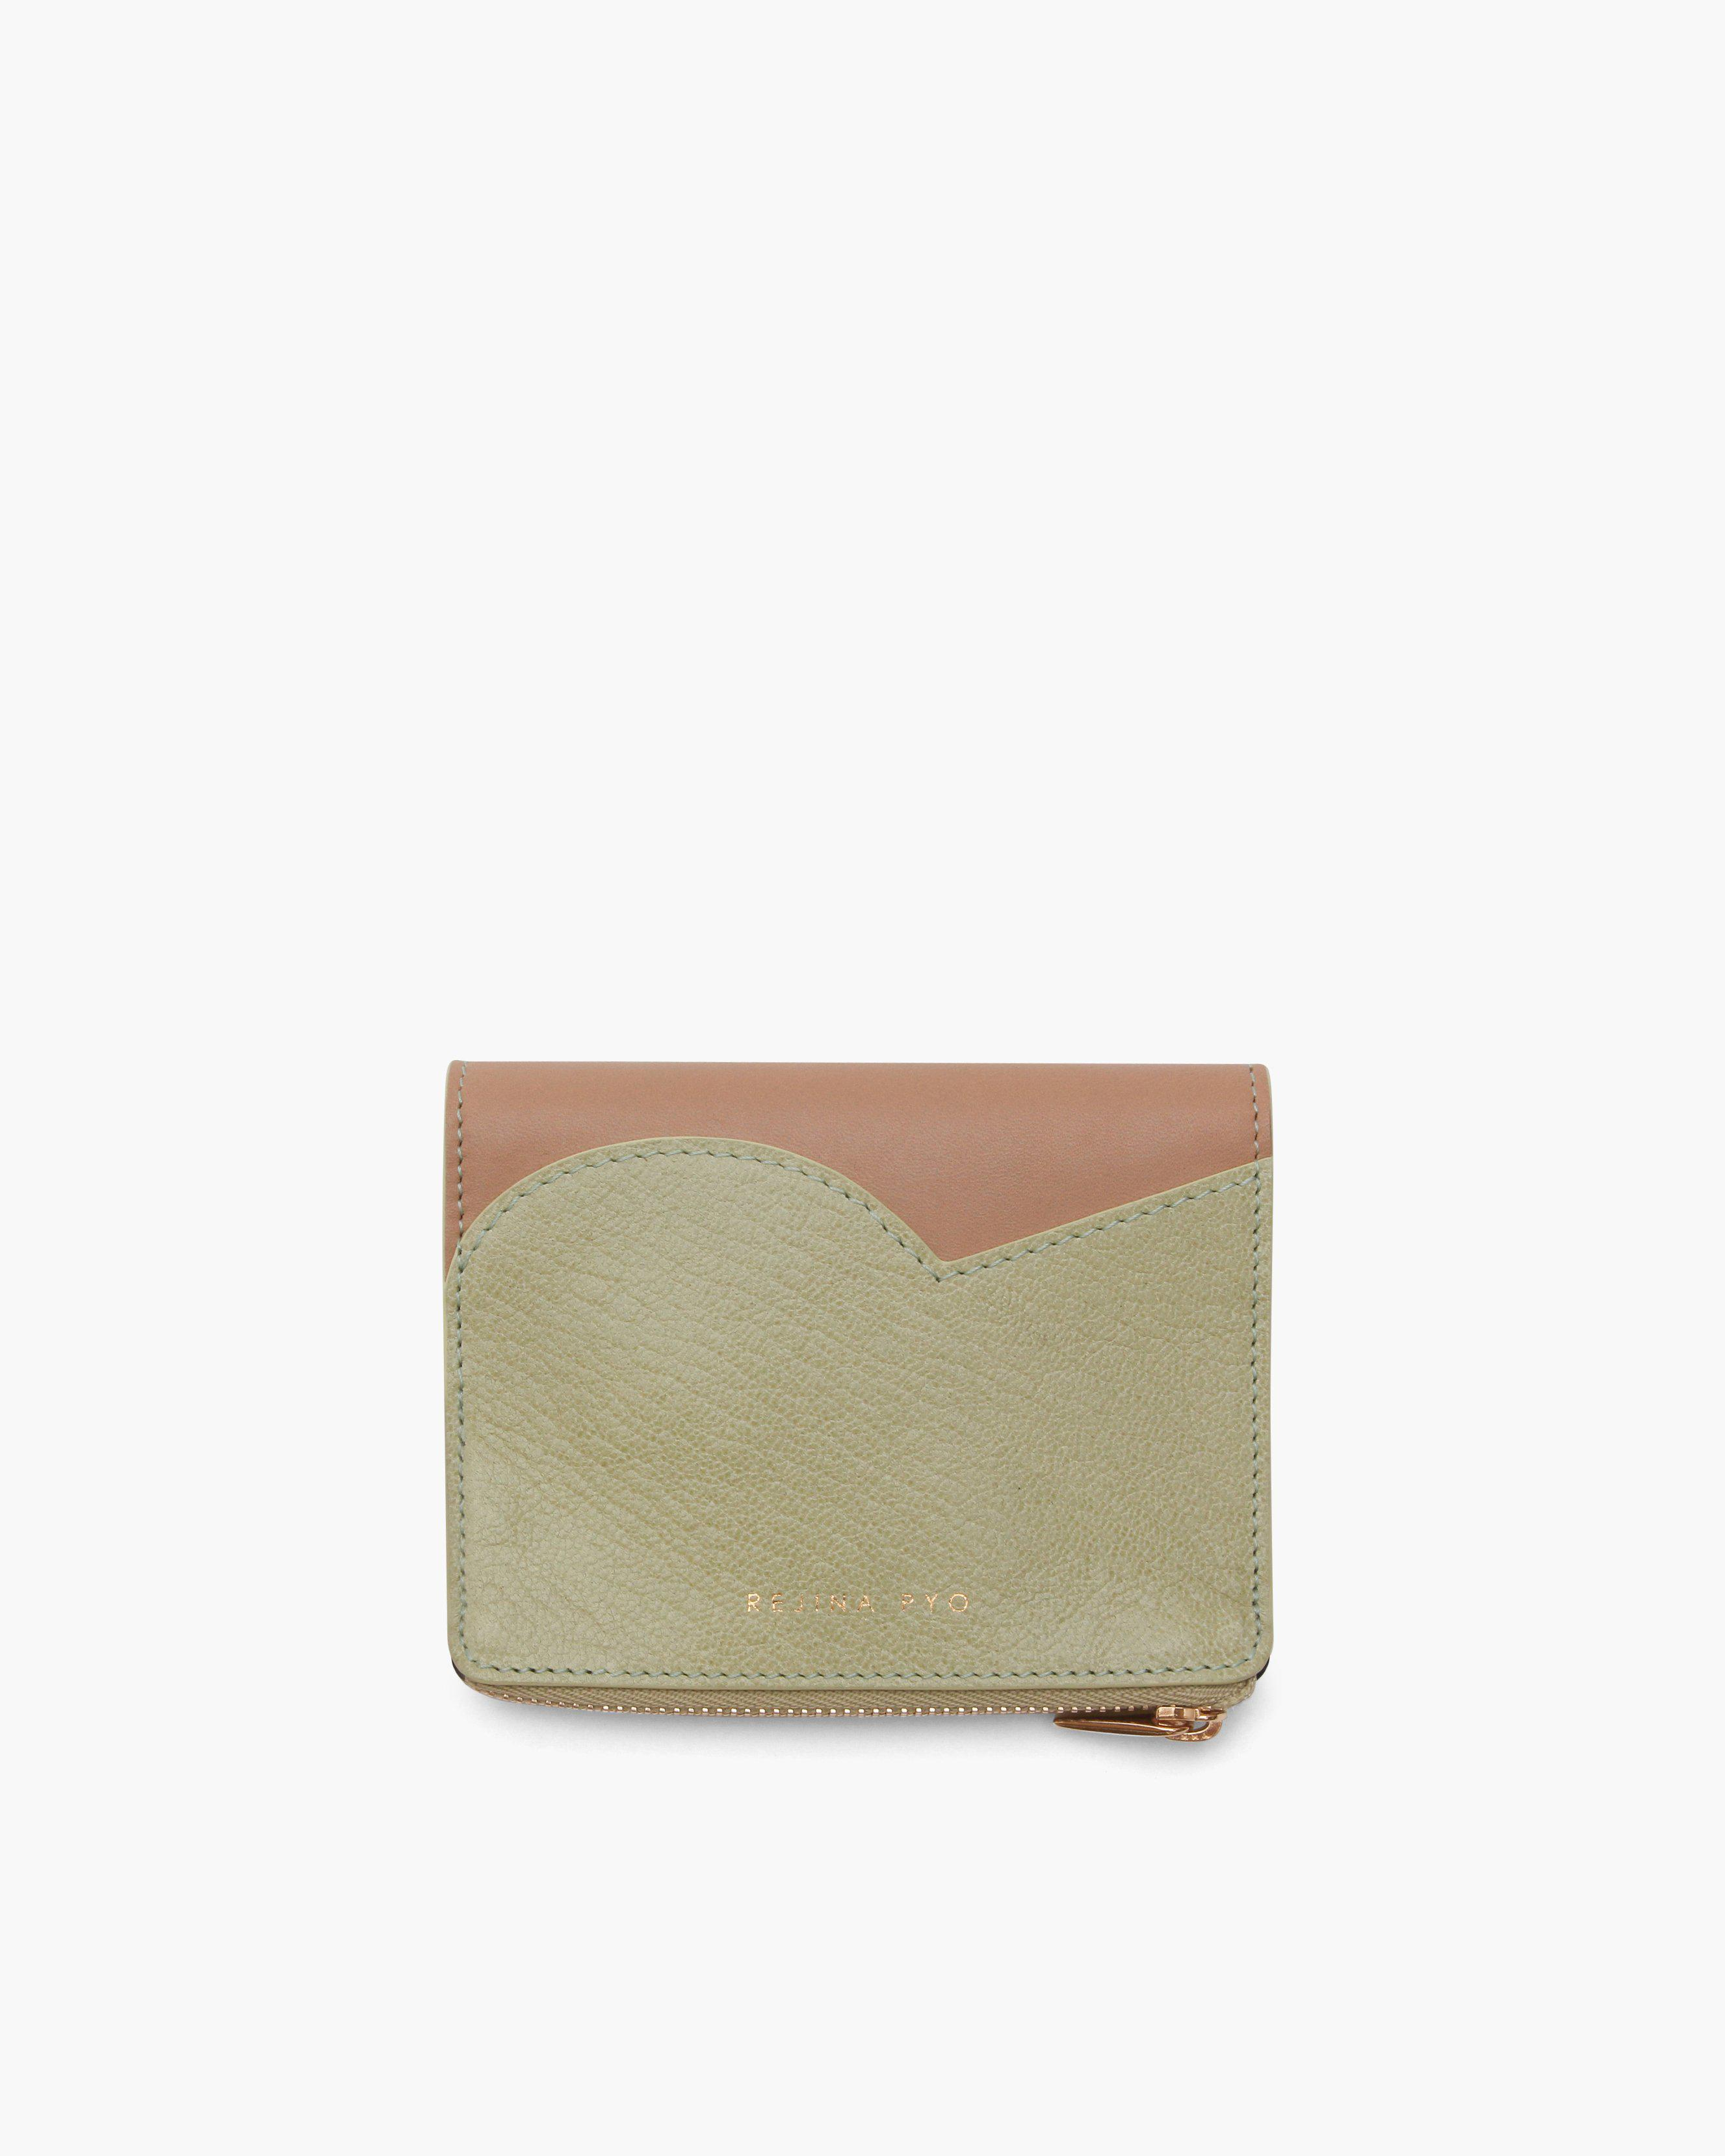 RP Zip Wallet Leather Citrus Green + Nappa Almond